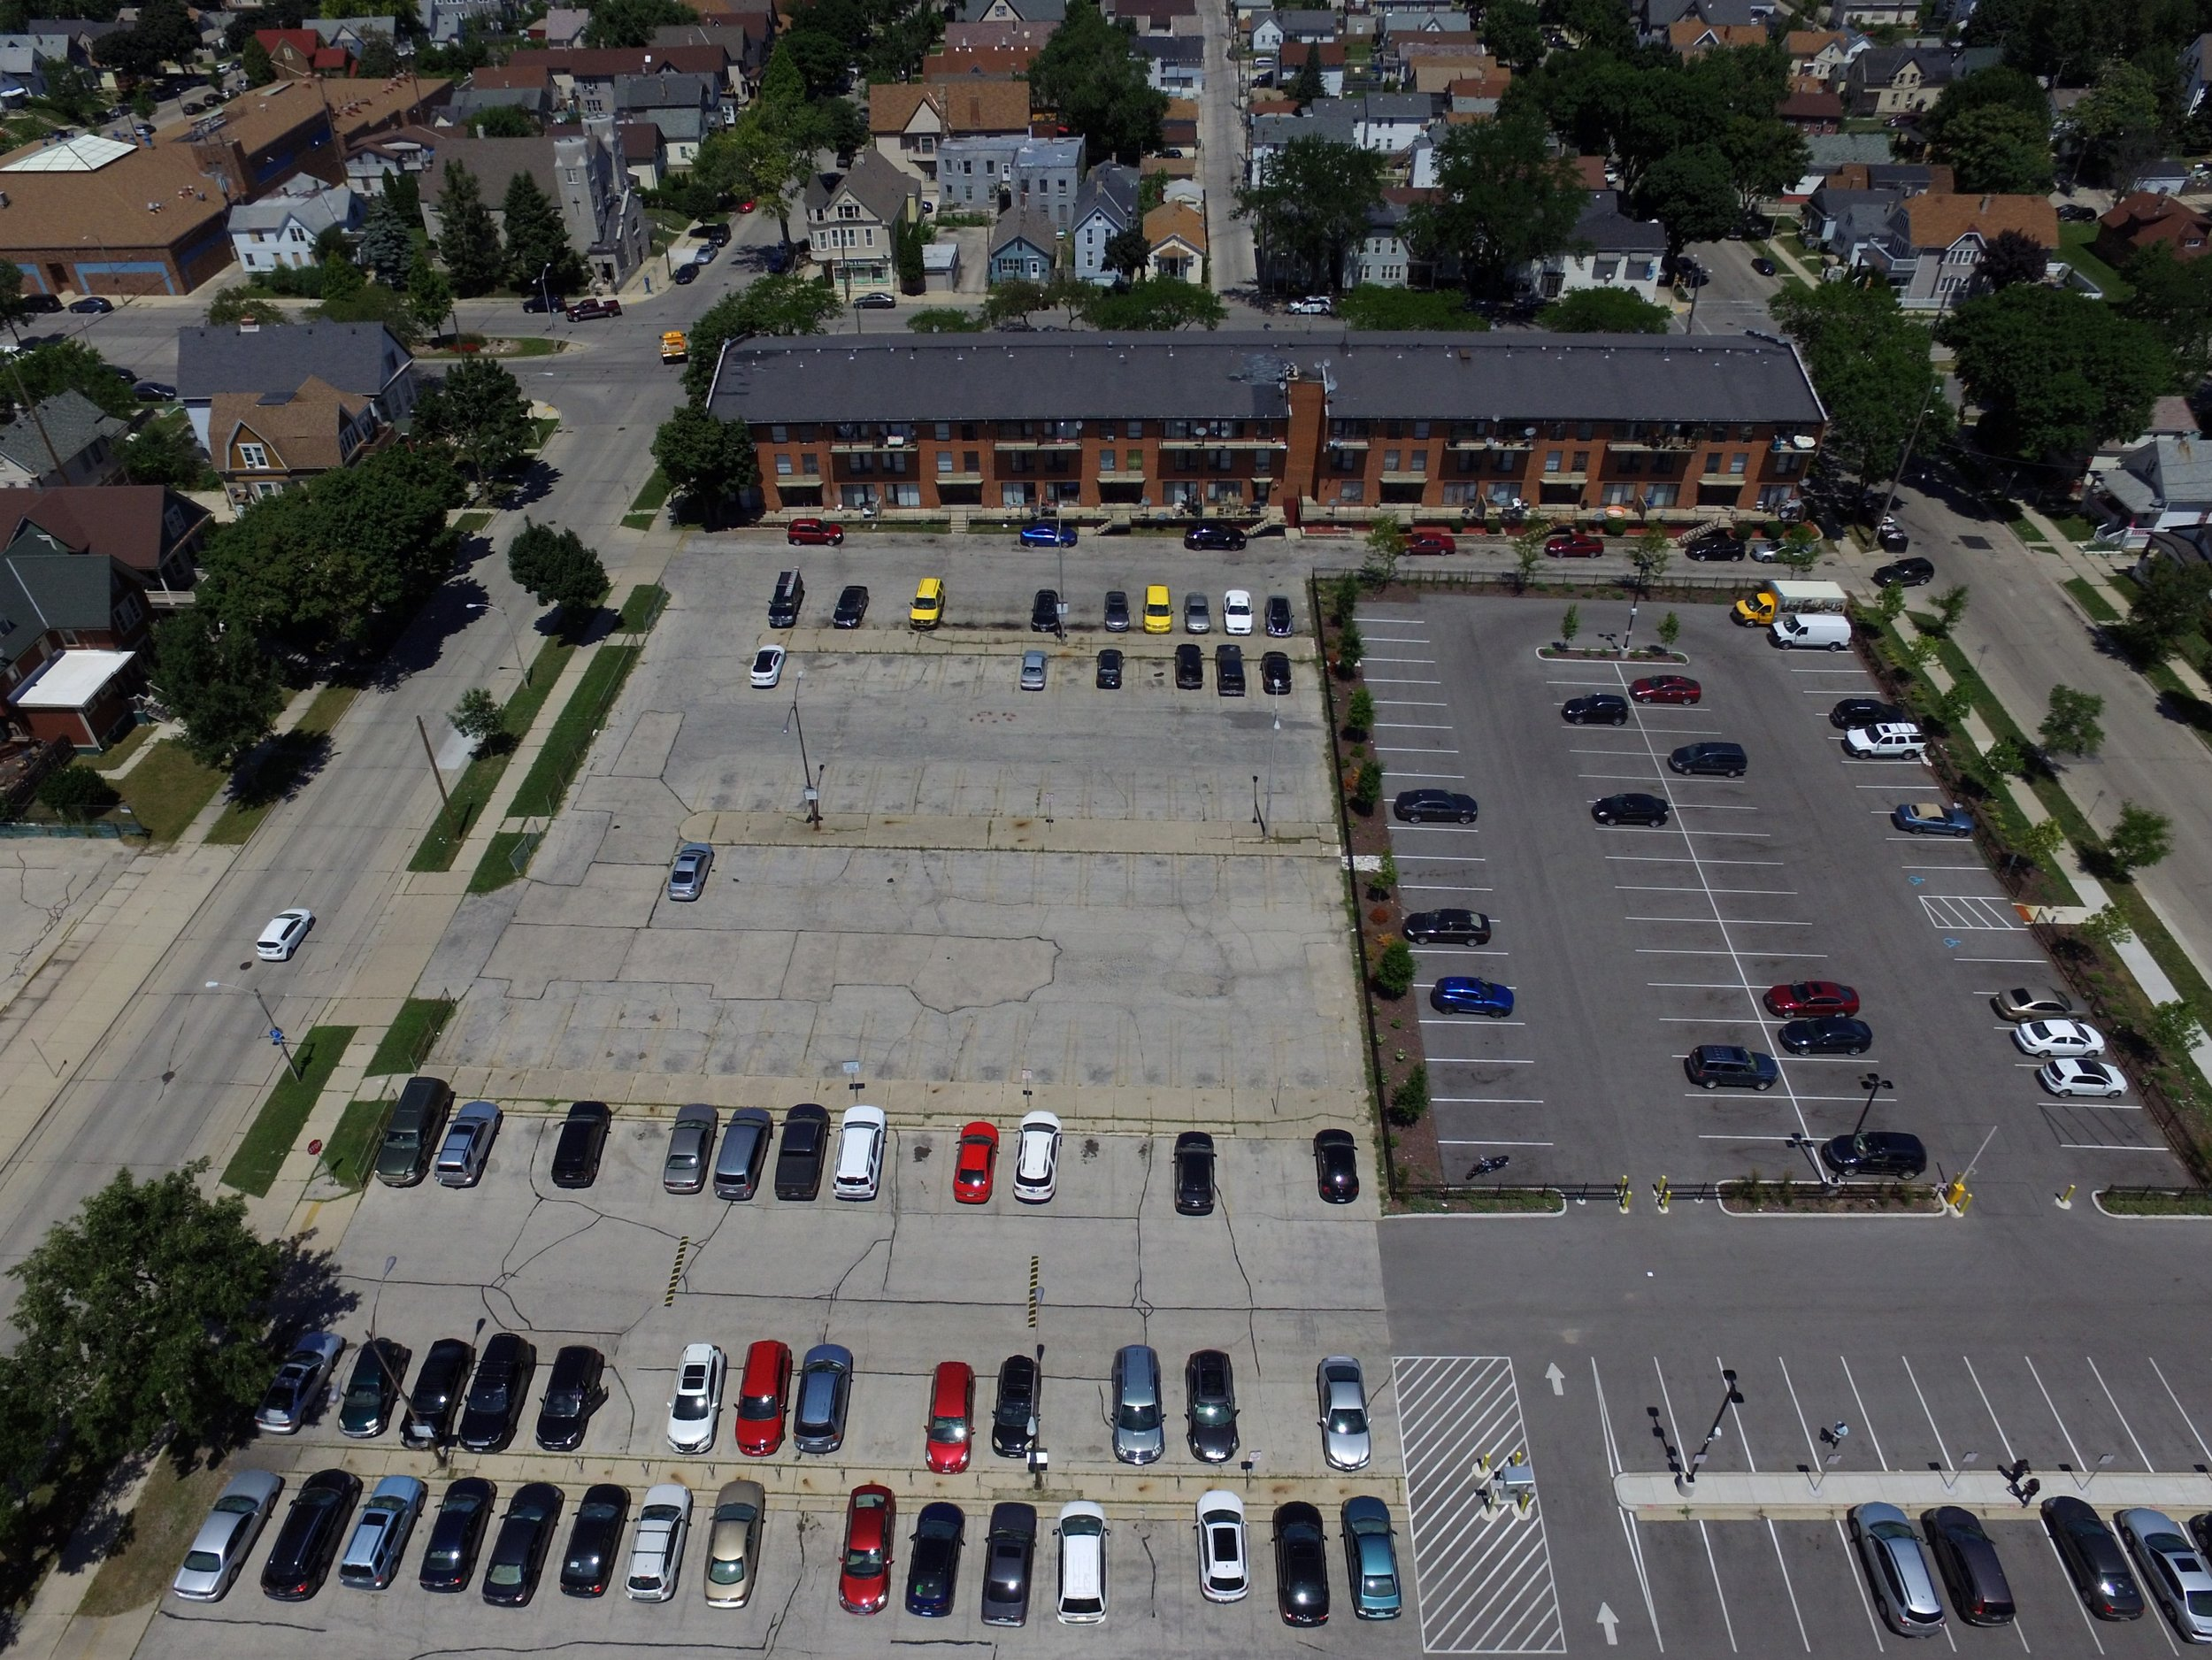 10th st project from south_drone.JPG